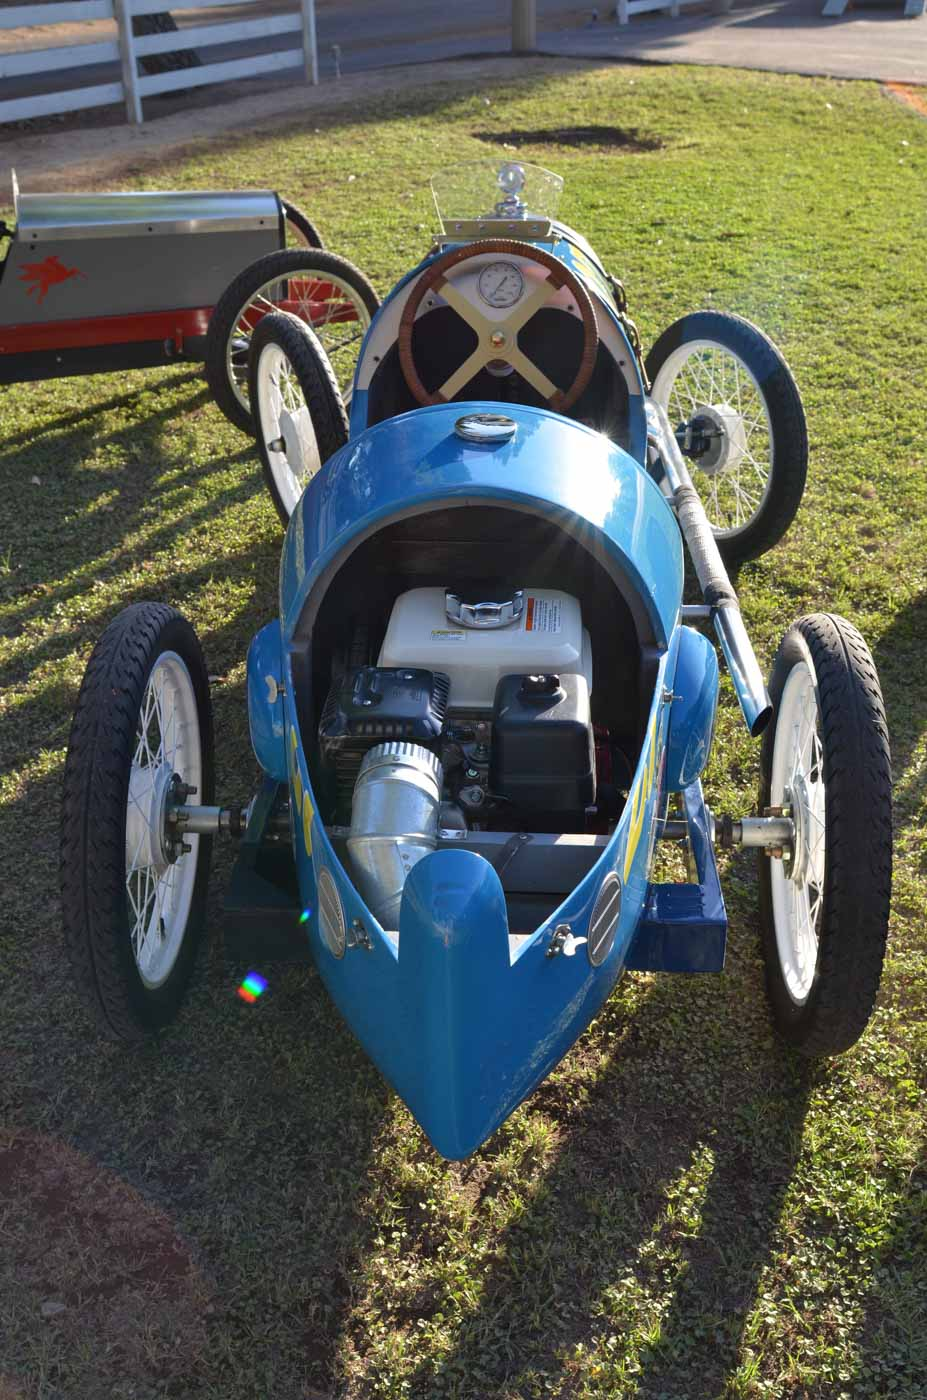 Cheap Fun and Fast Youre Going to Want a Cyclekart